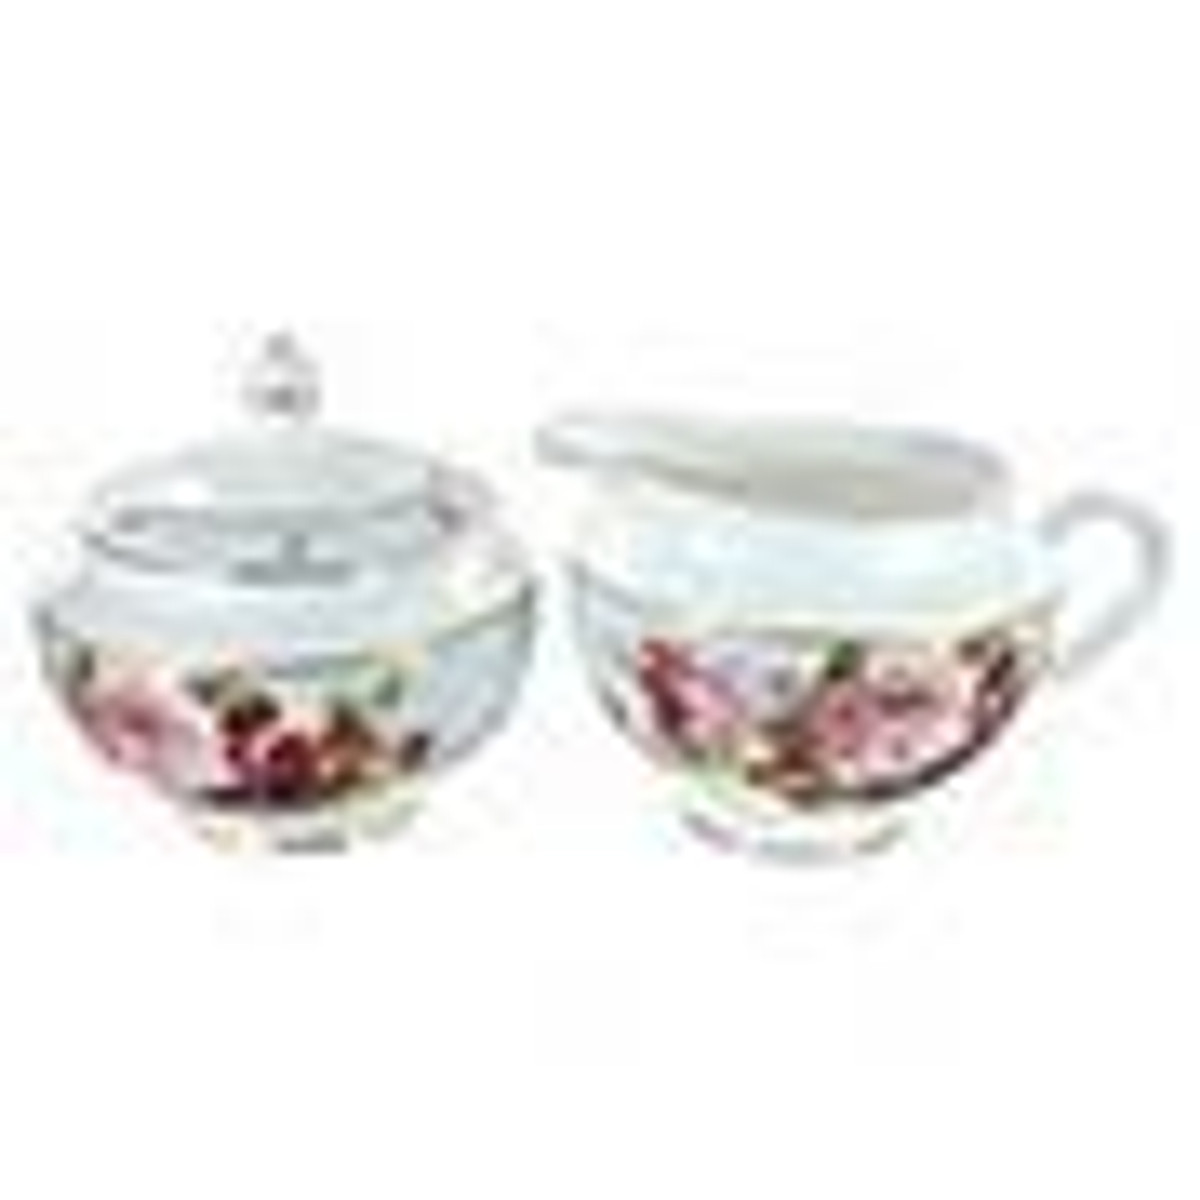 Decorated Cream & Sugar Sets